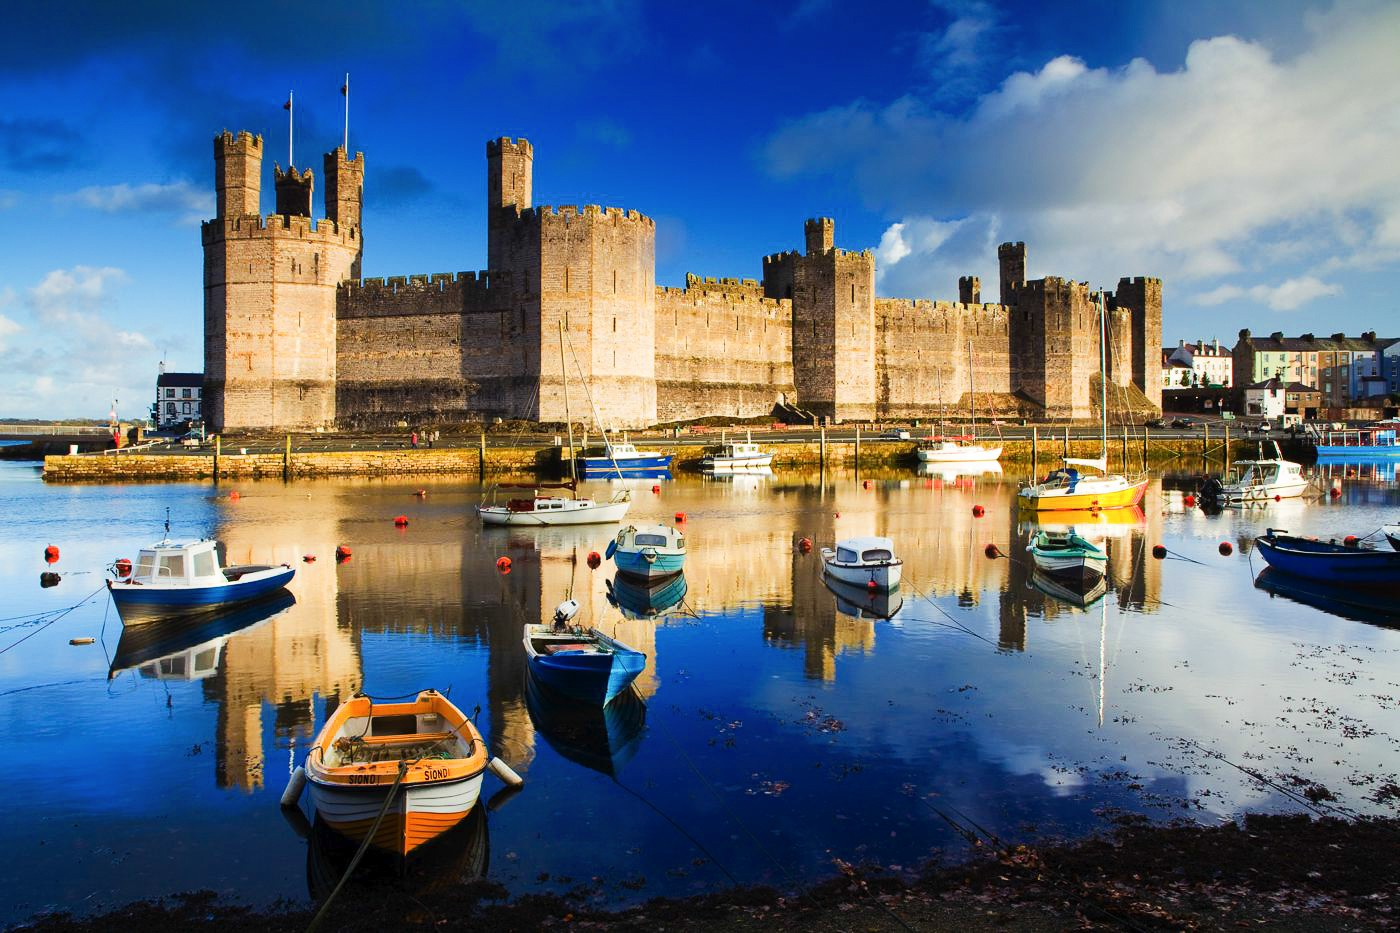 16 Fairytale Castles You Must See in Wales! Beaumaris Castle Caernarfon Castle Caerphilly Castle Carreg Cennen Castle Castell Coch Chepstow Castle Conwy Castle Criccieth Castle Denbigh Castle Dolwyddelan Castle Harlech Castle Kidwelly Castle Raglan Castle St Davids Bishop's Palace Tintern Abbey Tretower Court & Castle Weobley Castle (2)